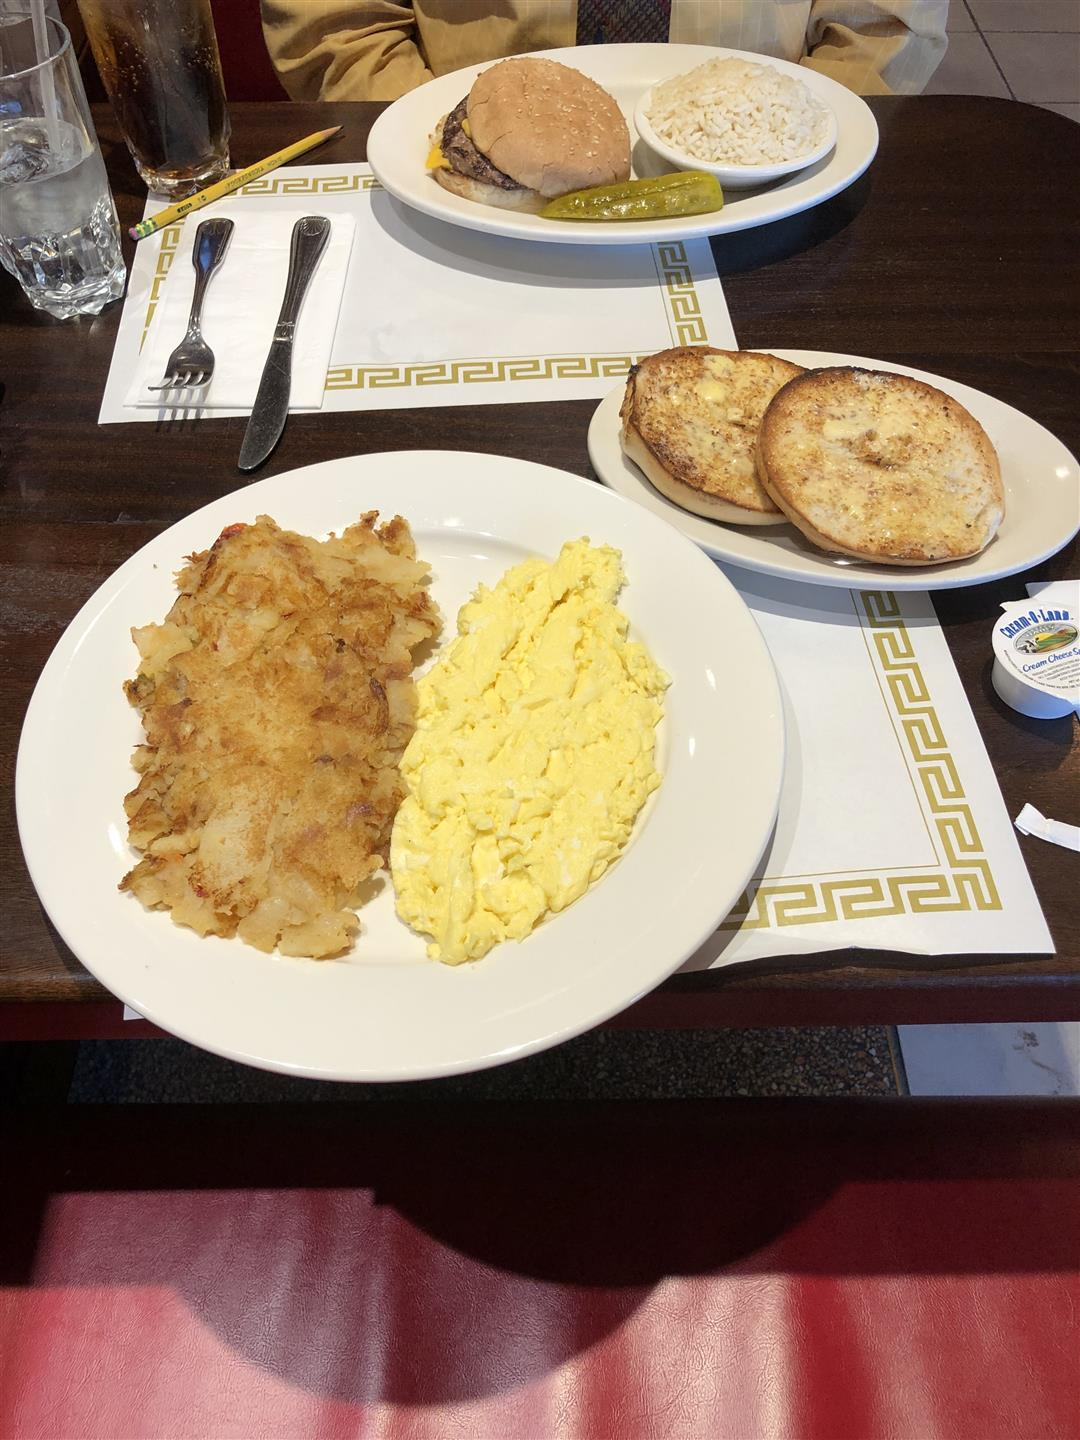 hash browns, scrambled eggs and a toasted bagel on a plate placed on the table